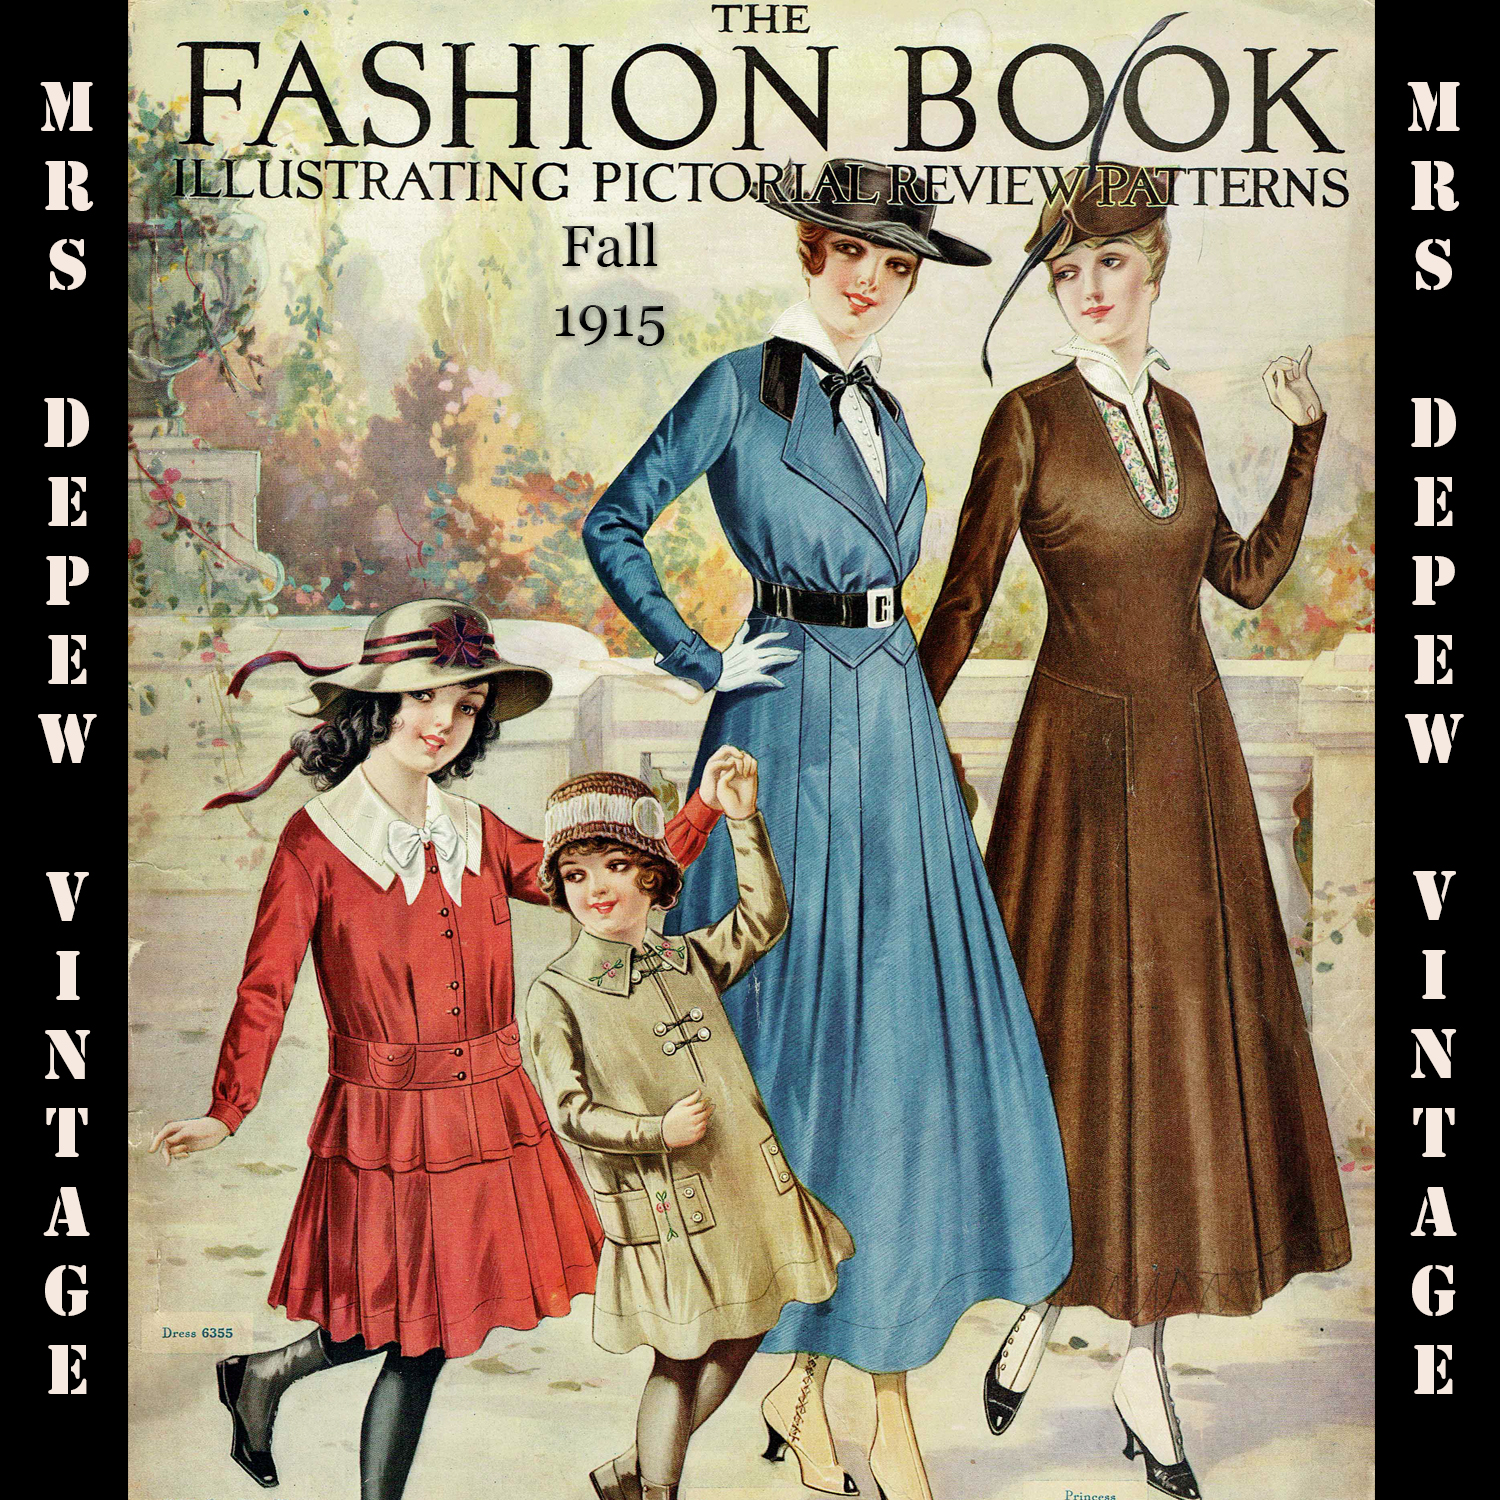 Pictorial Review Fashion Book Fall 1915